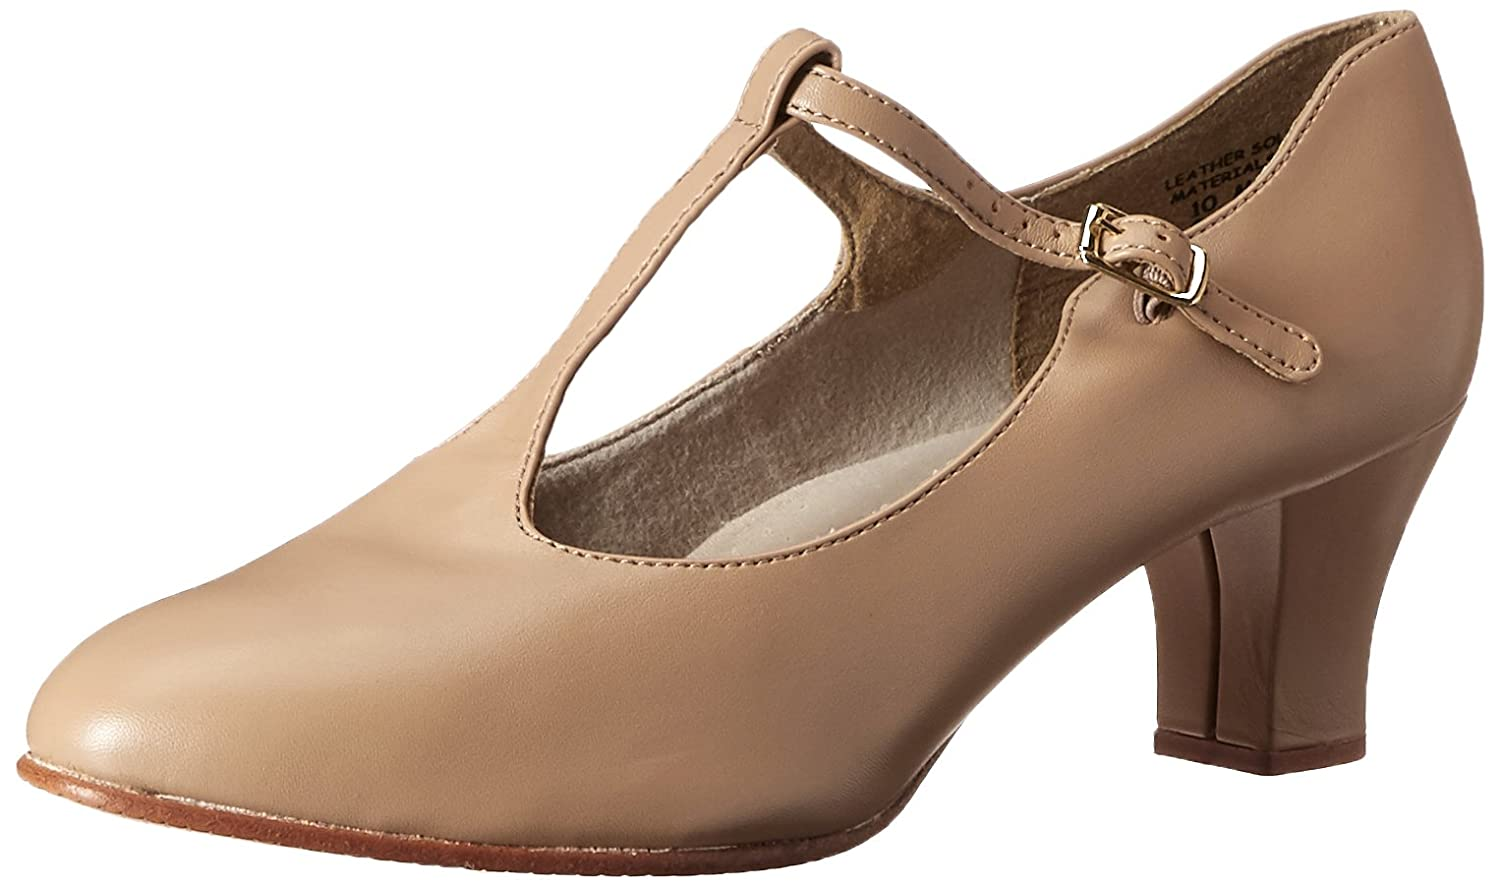 Capezio Women's Jr. Footlight T-Strap Dance Shoe B008QR7HZK 6.5 B(M) US|Caramel